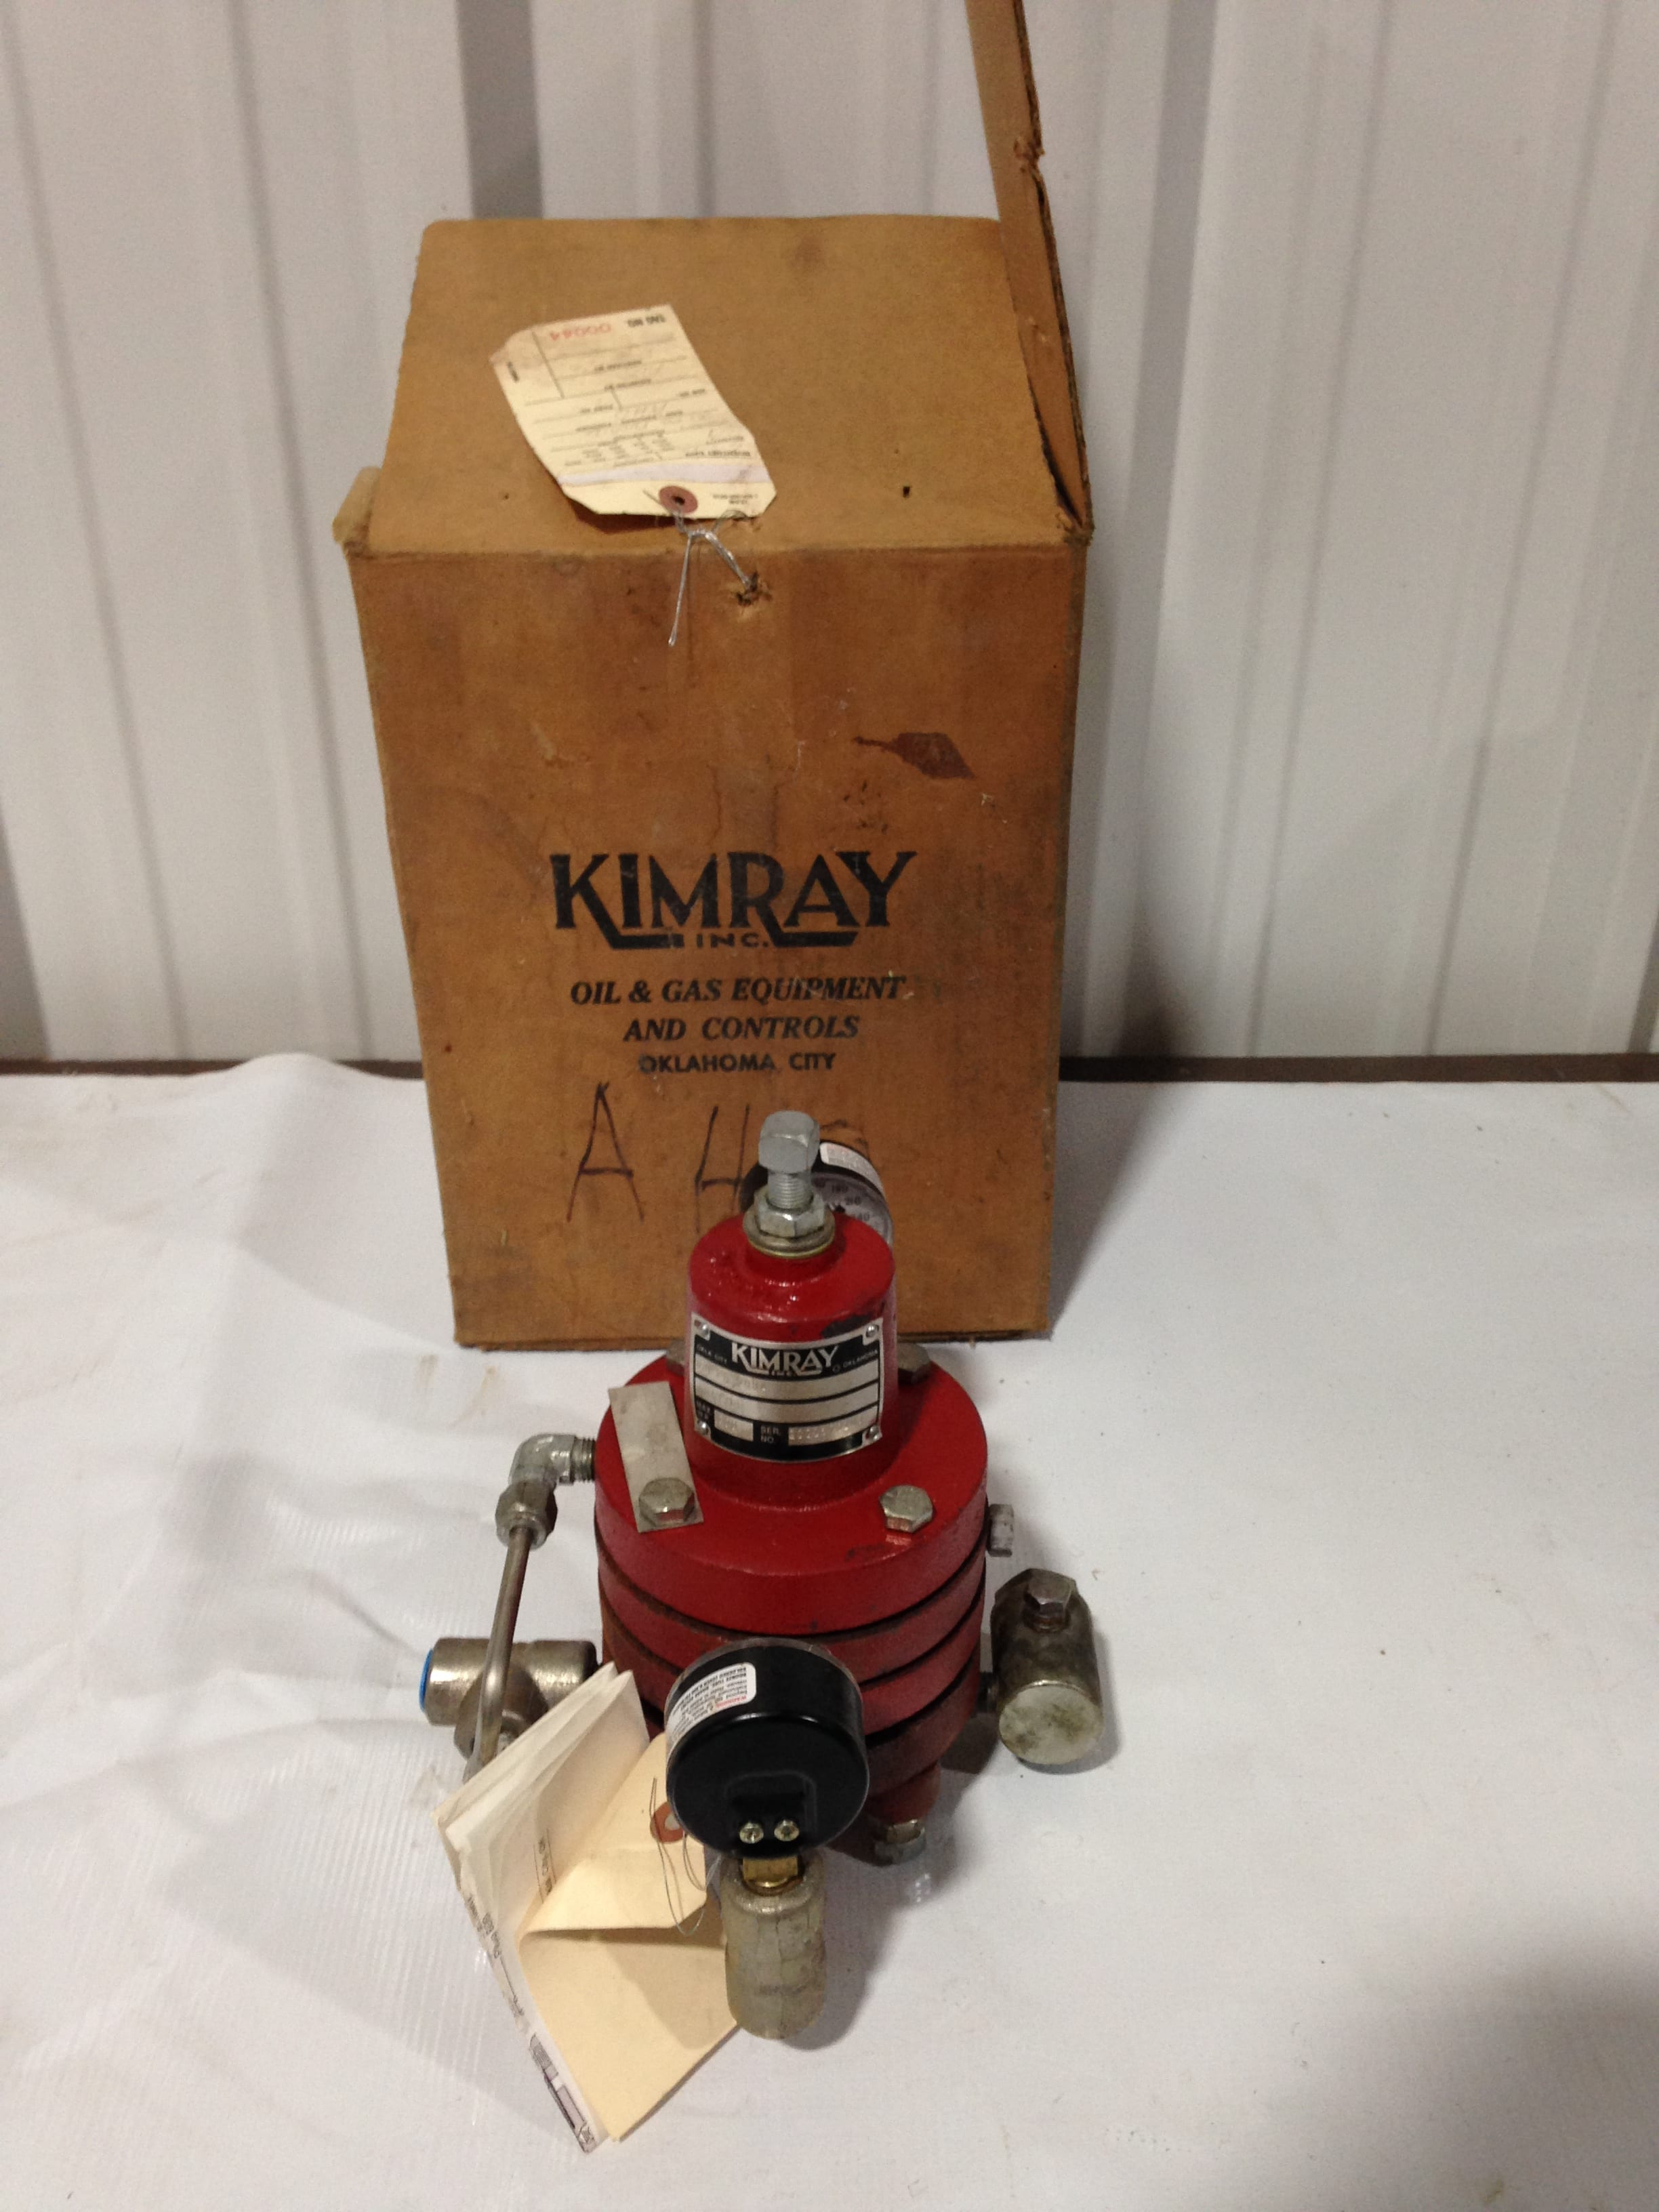 Kimray 30-PG-PDDA Ductile Iron Regulator Pilot Valve 300PSI wp -NIB